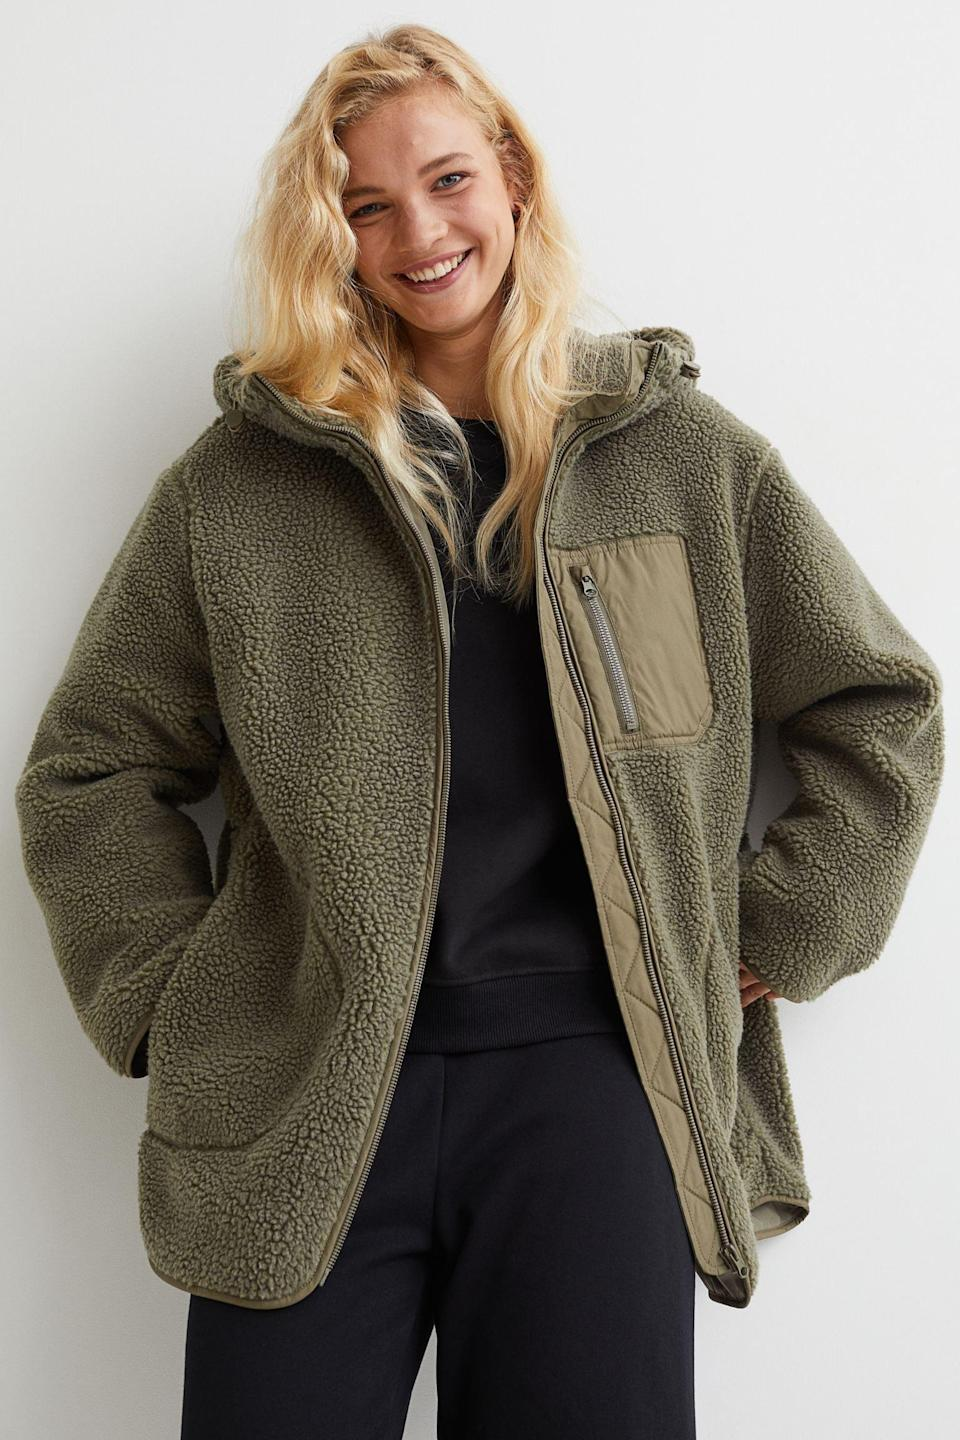 <p>This <span>Hooded Faux Shearling Jacket</span> ($40, originally $50) will make you look and feel effortless, thanks to its laidback vibe and the cool construction. You'll swear by it all fall and winter.</p>